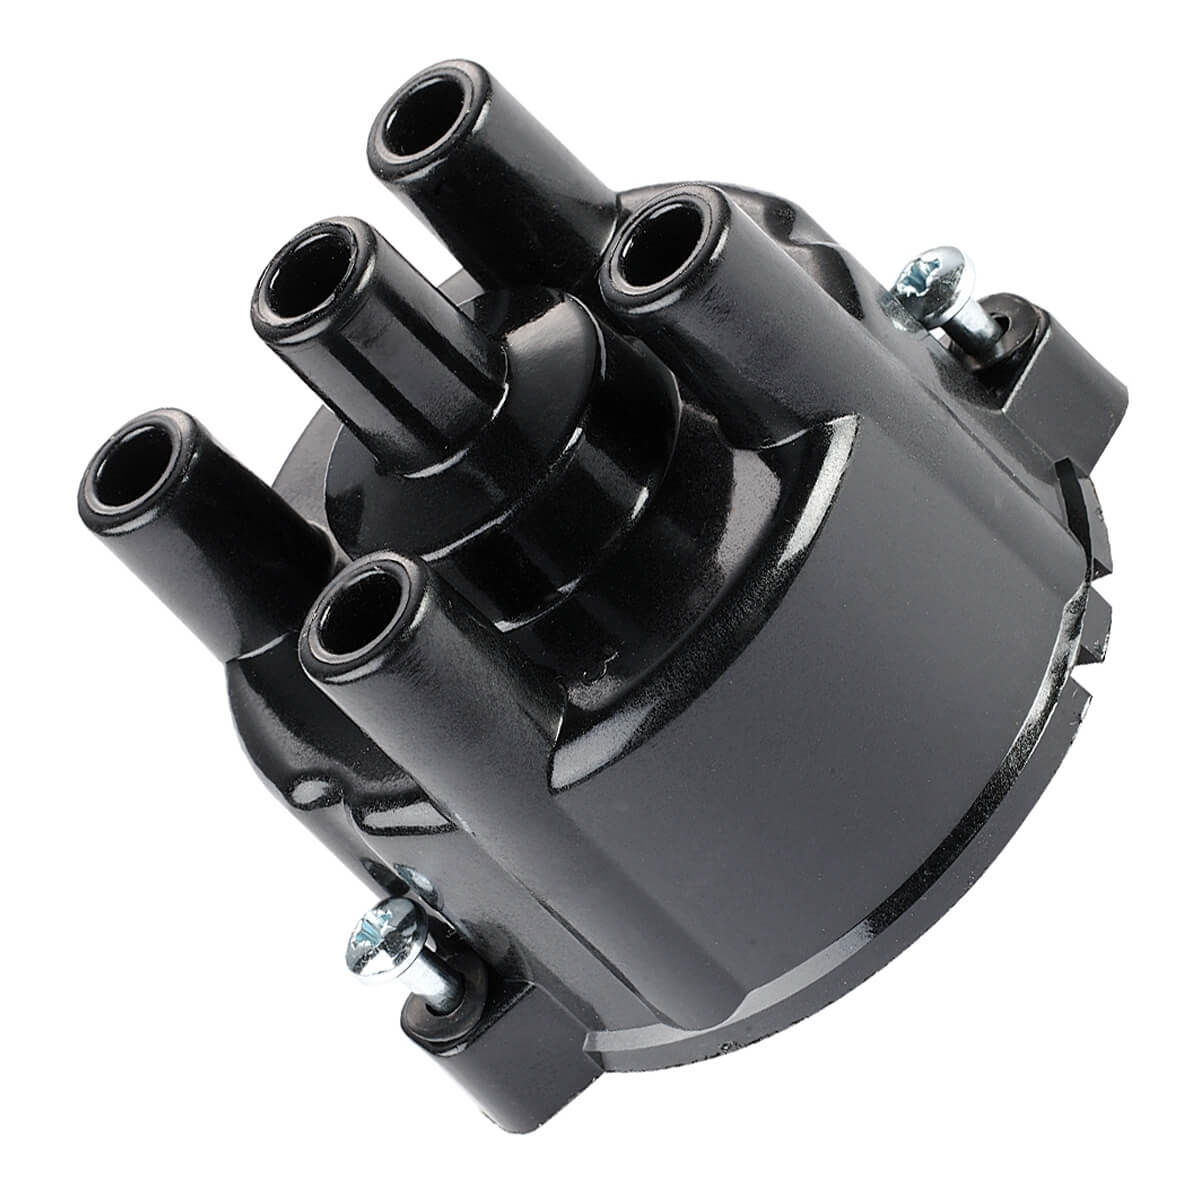 BEDFORD CHEVANNE Distributor Cap